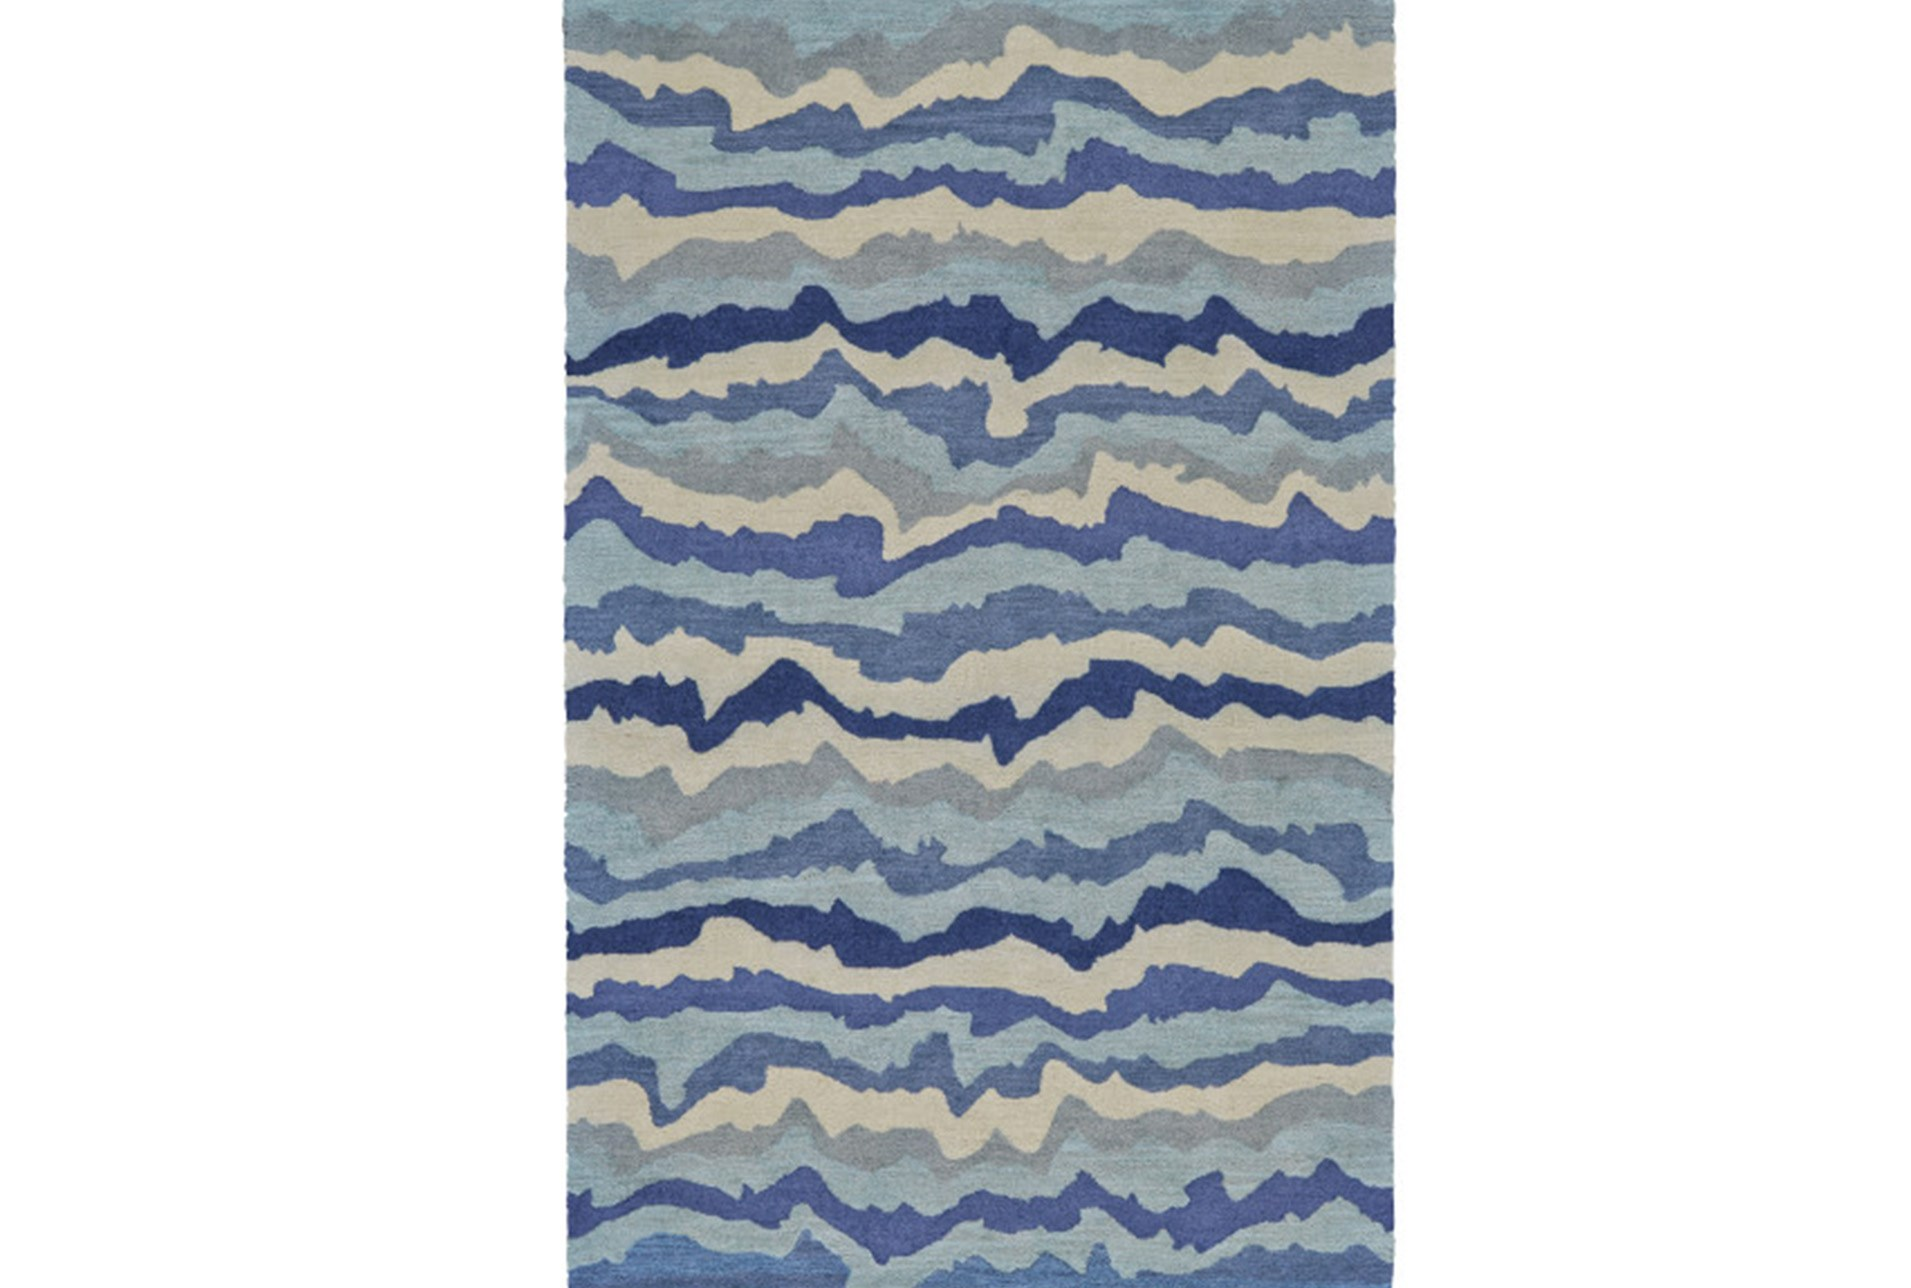 96x132 Rug Blue Tones Rippled Lines Living Spaces